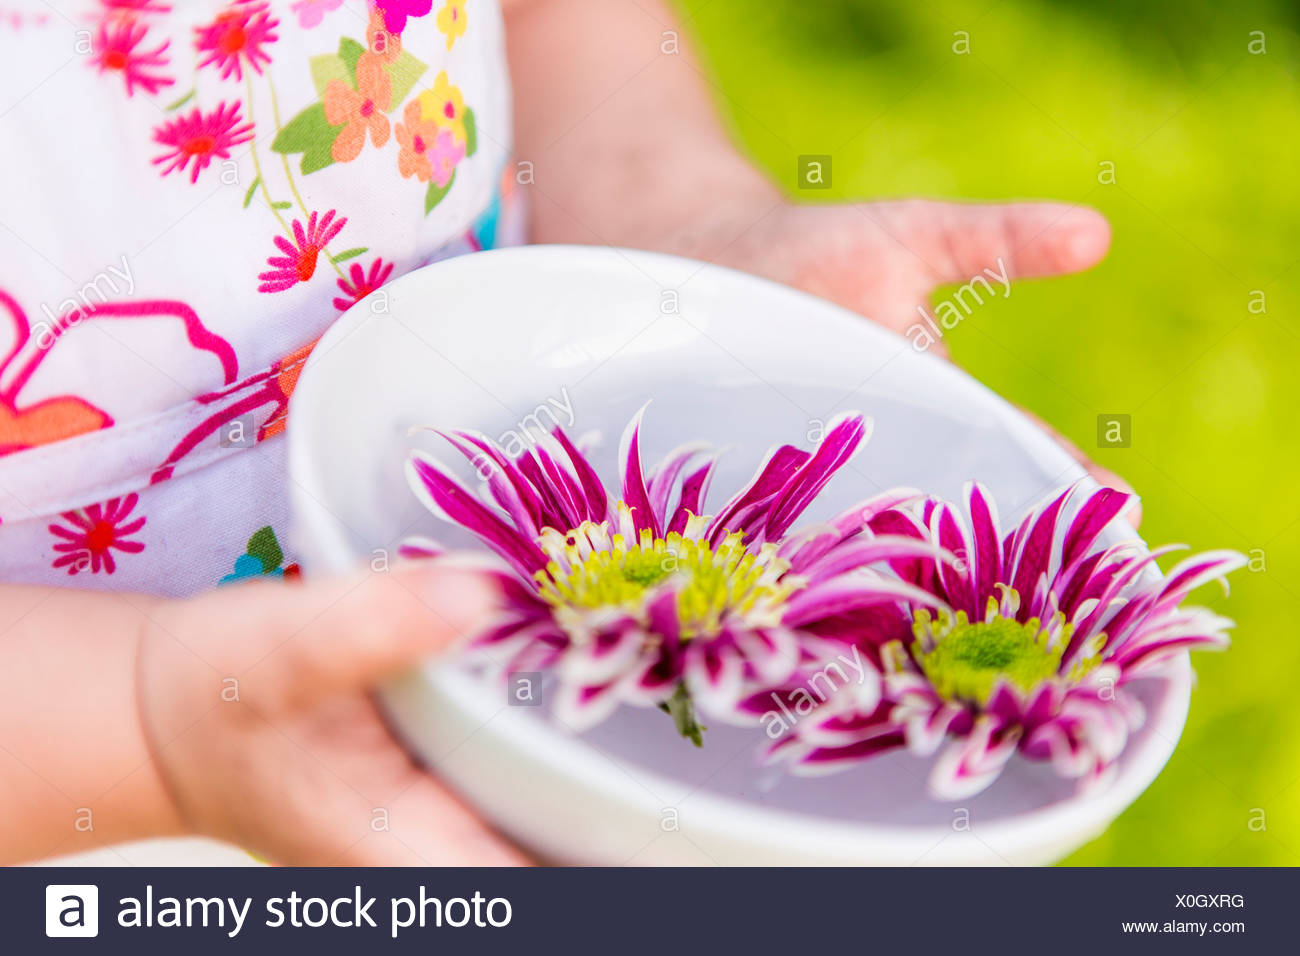 Girl holding flowers in bowl outdoors - Stock Image